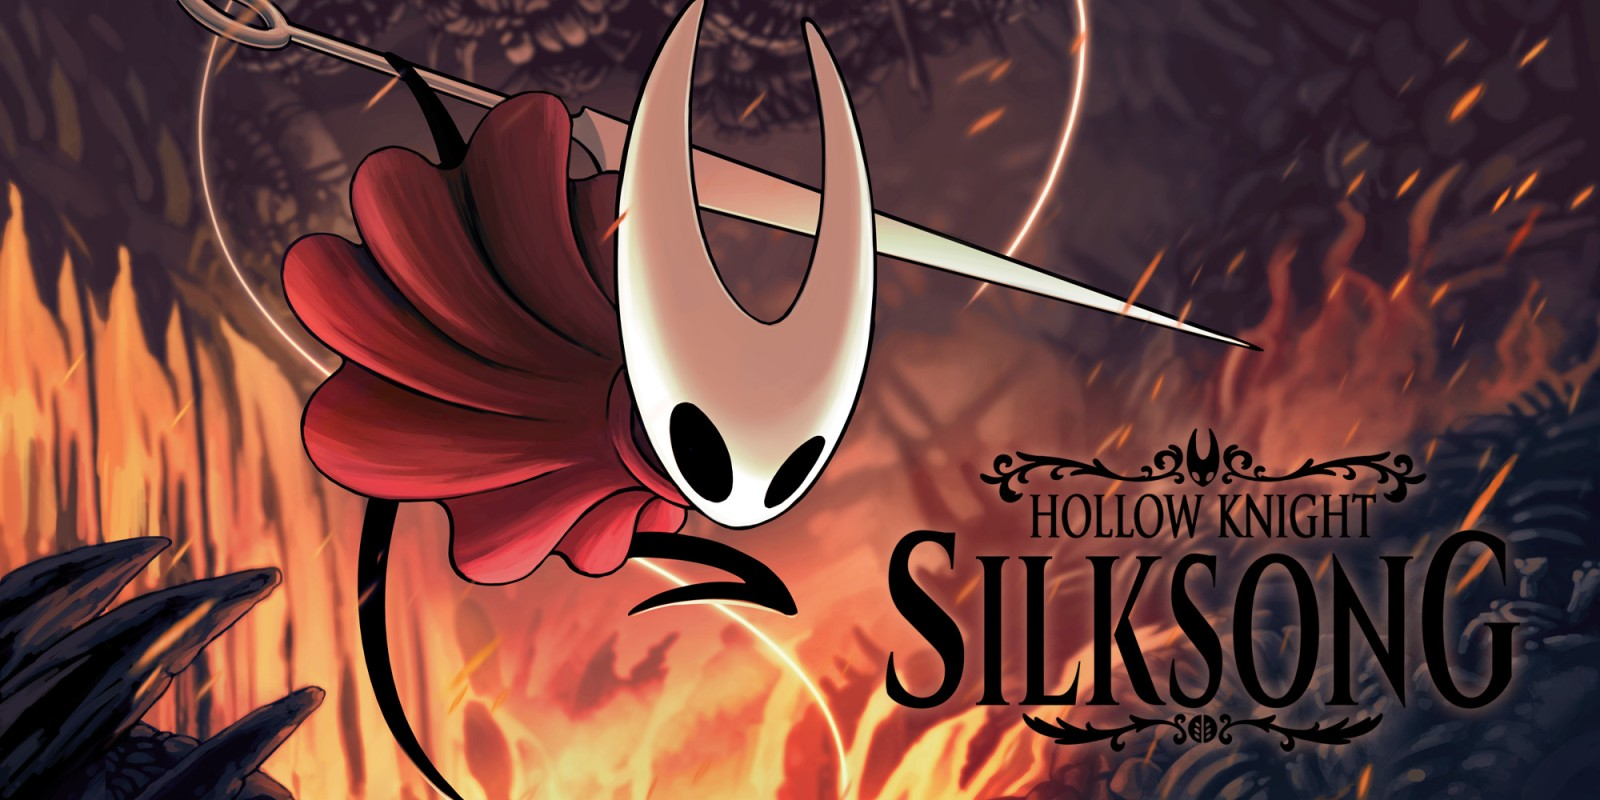 H2x1_NSwitchDS_HollowKnightSilksong_imag